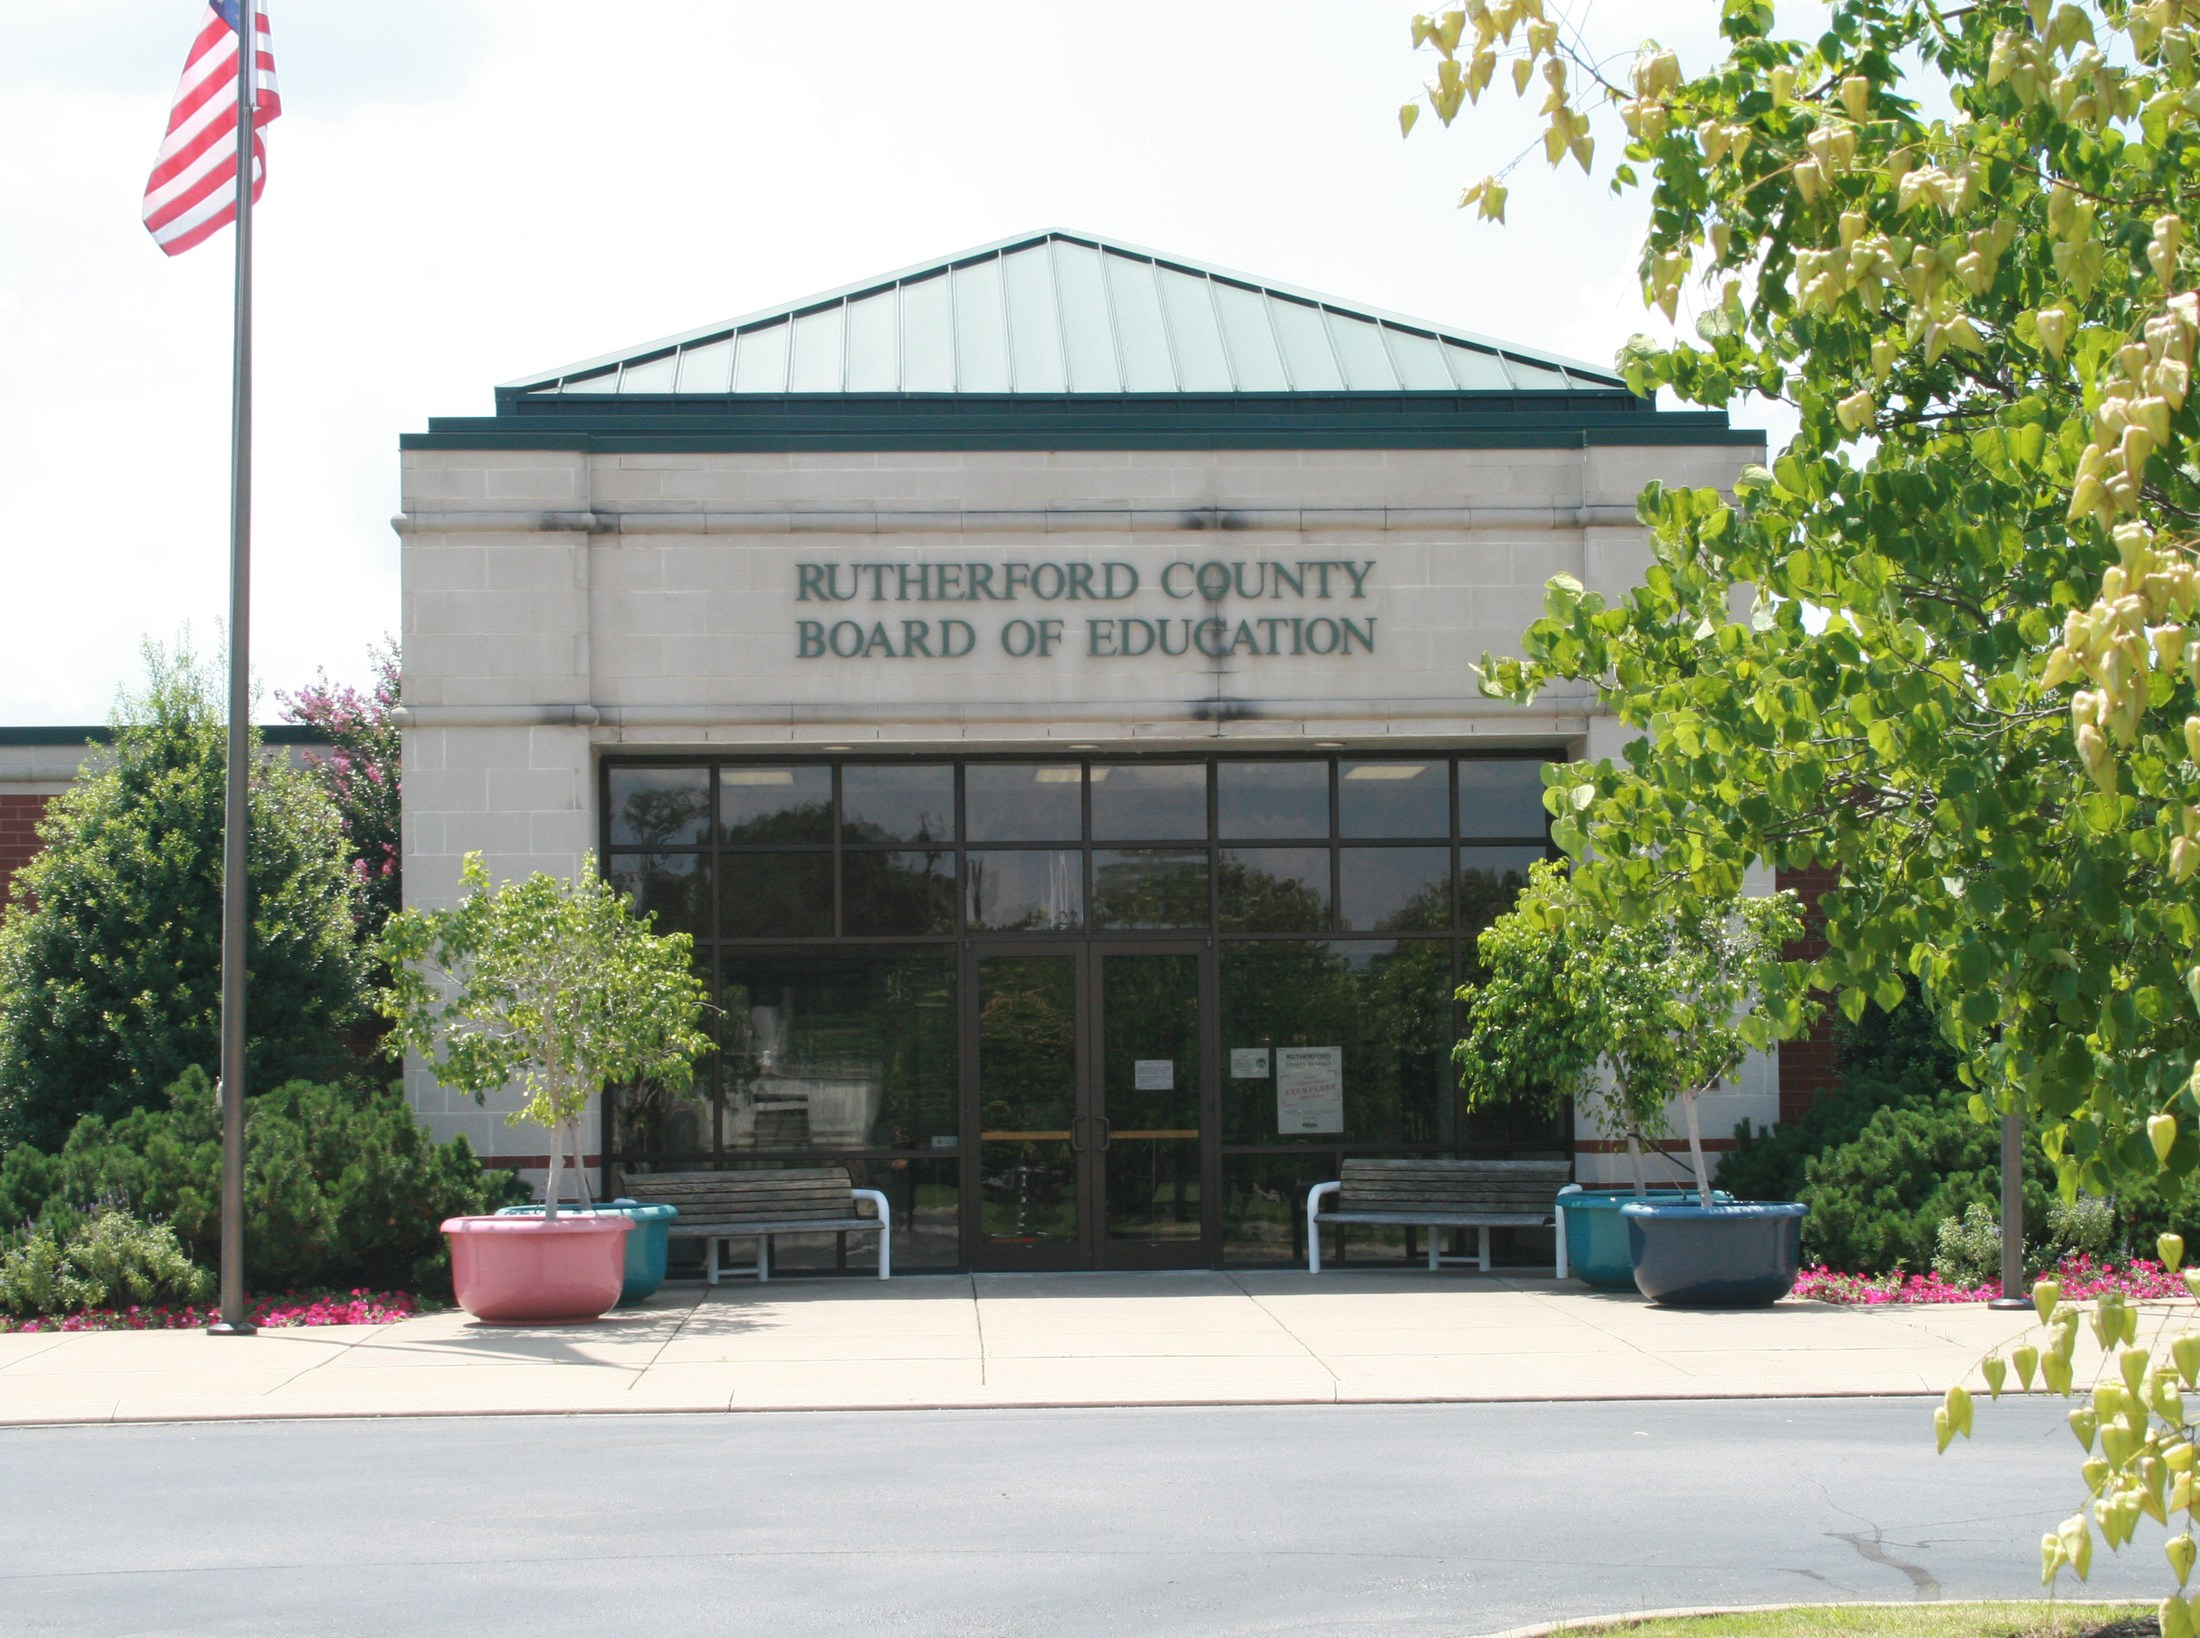 Rutherford County Schools' Central Office